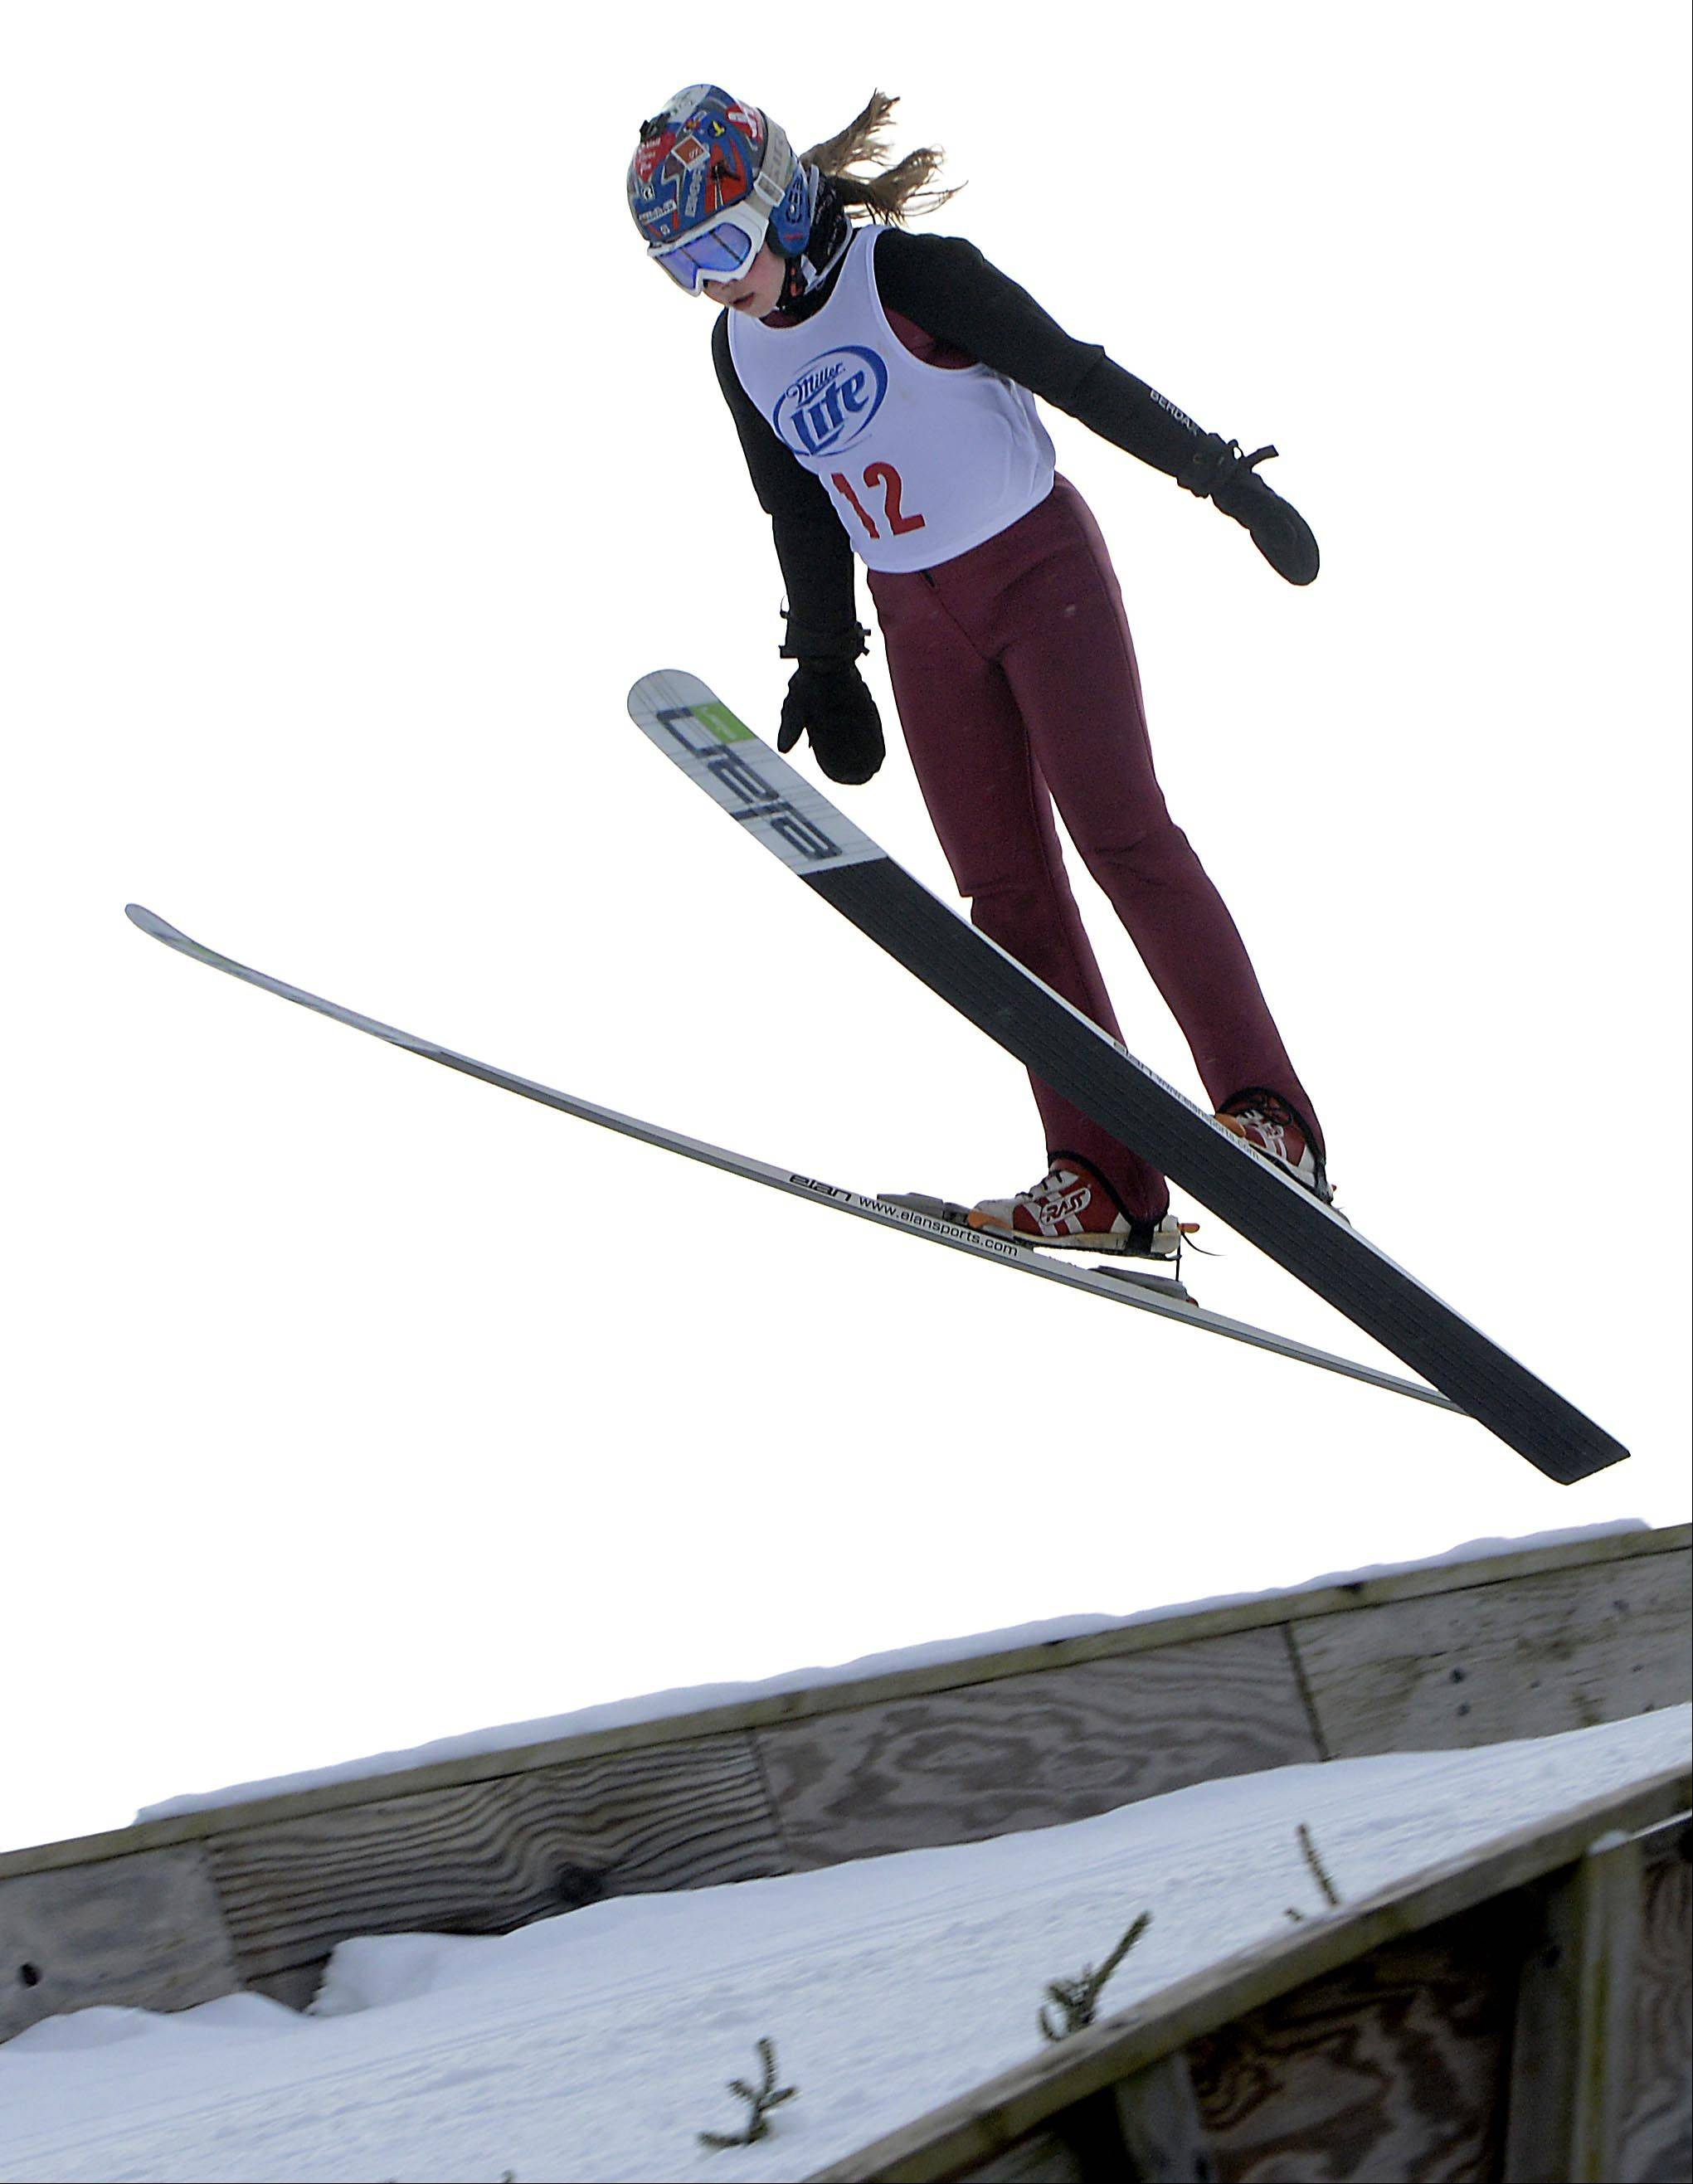 Cara Larson, 13, of Barrington competes in the Under 20 Women�s Class, jumps Sunday at the Norge International Ski Jumping Tournament in Fox River Grove. She belongs to the Norge Ski Club and has been jumping for six years.